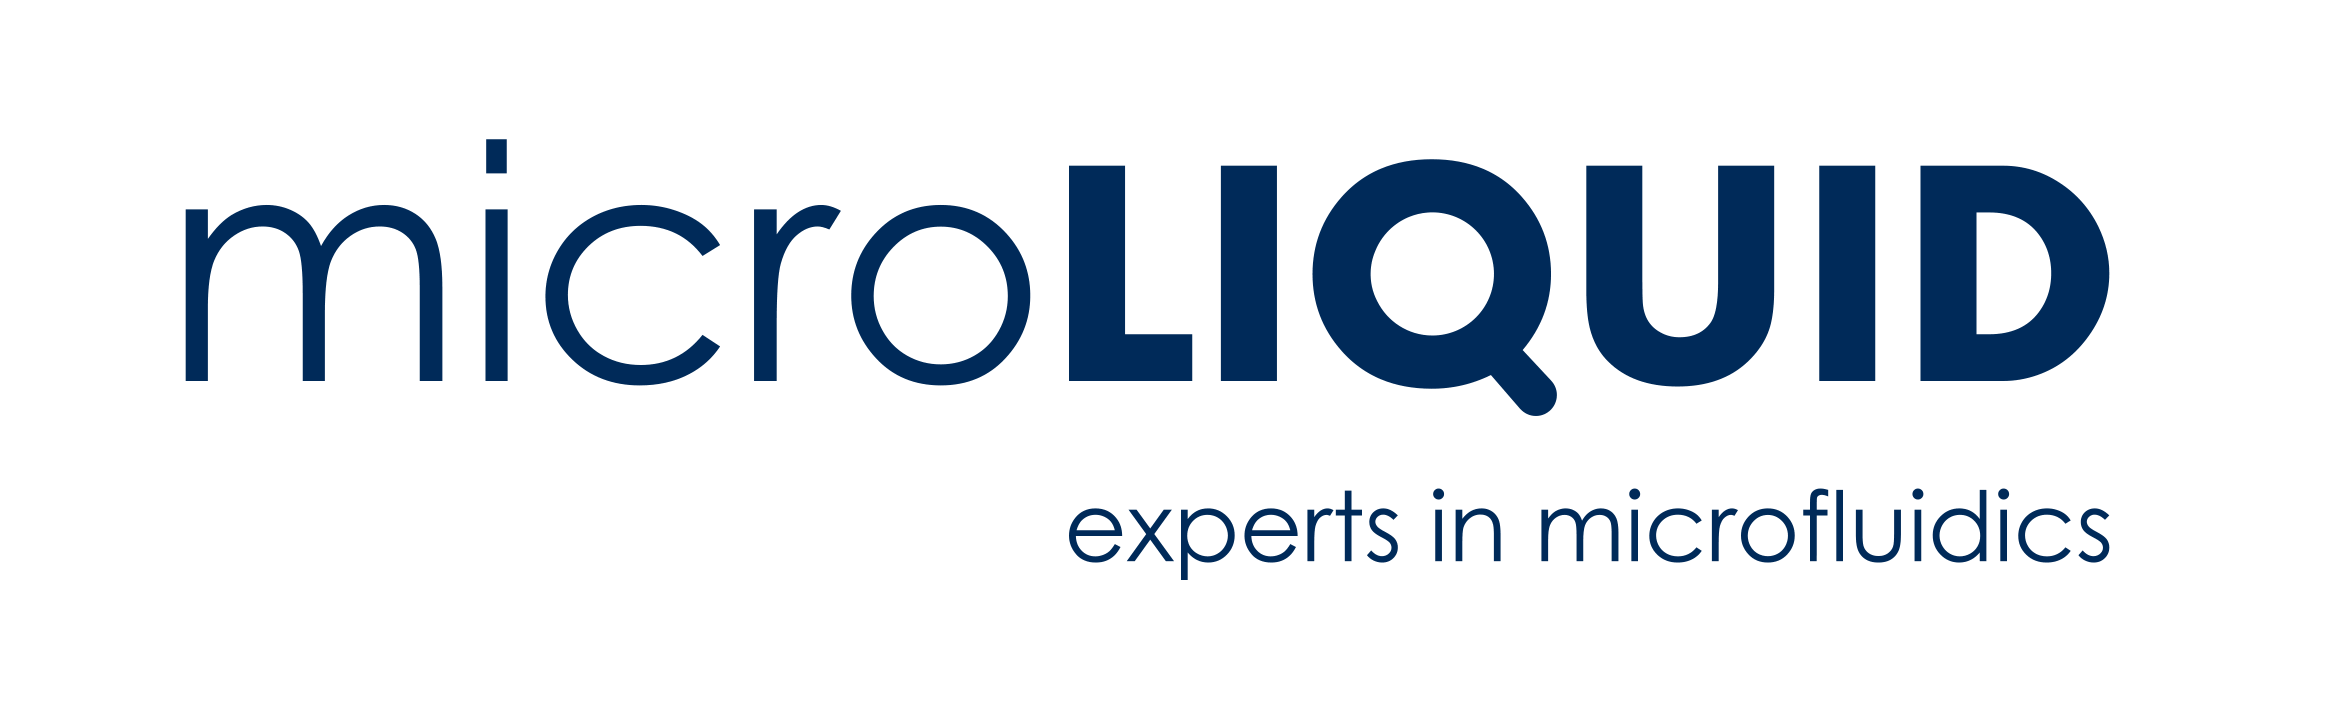 microLIQUID. Experts in microfluidics